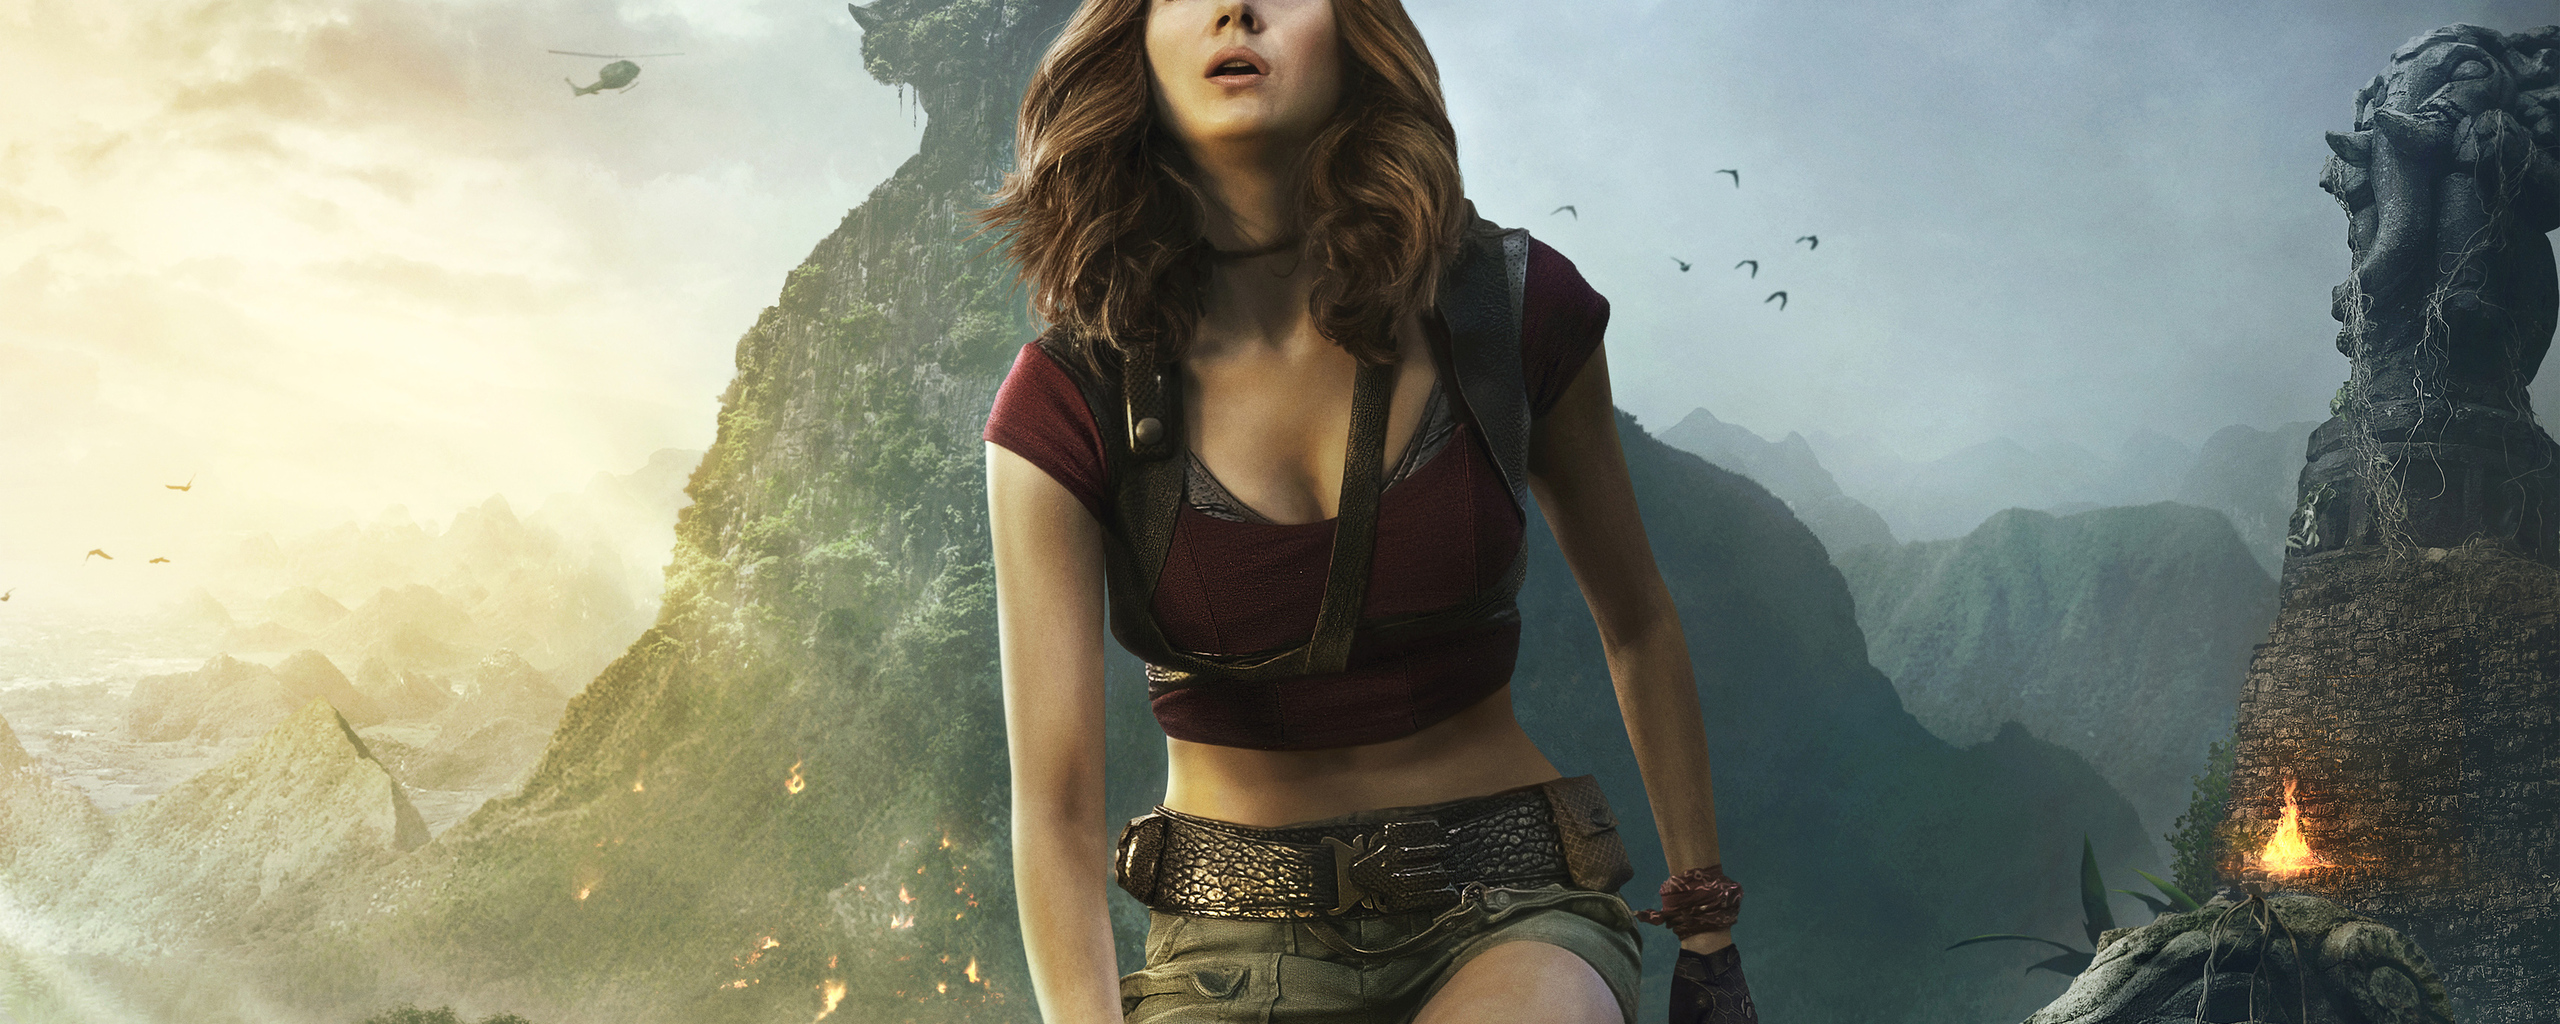 karen-gillan-as-ruby-roundhouse-jumanji-welcome-to-the-jungle-9q.jpg